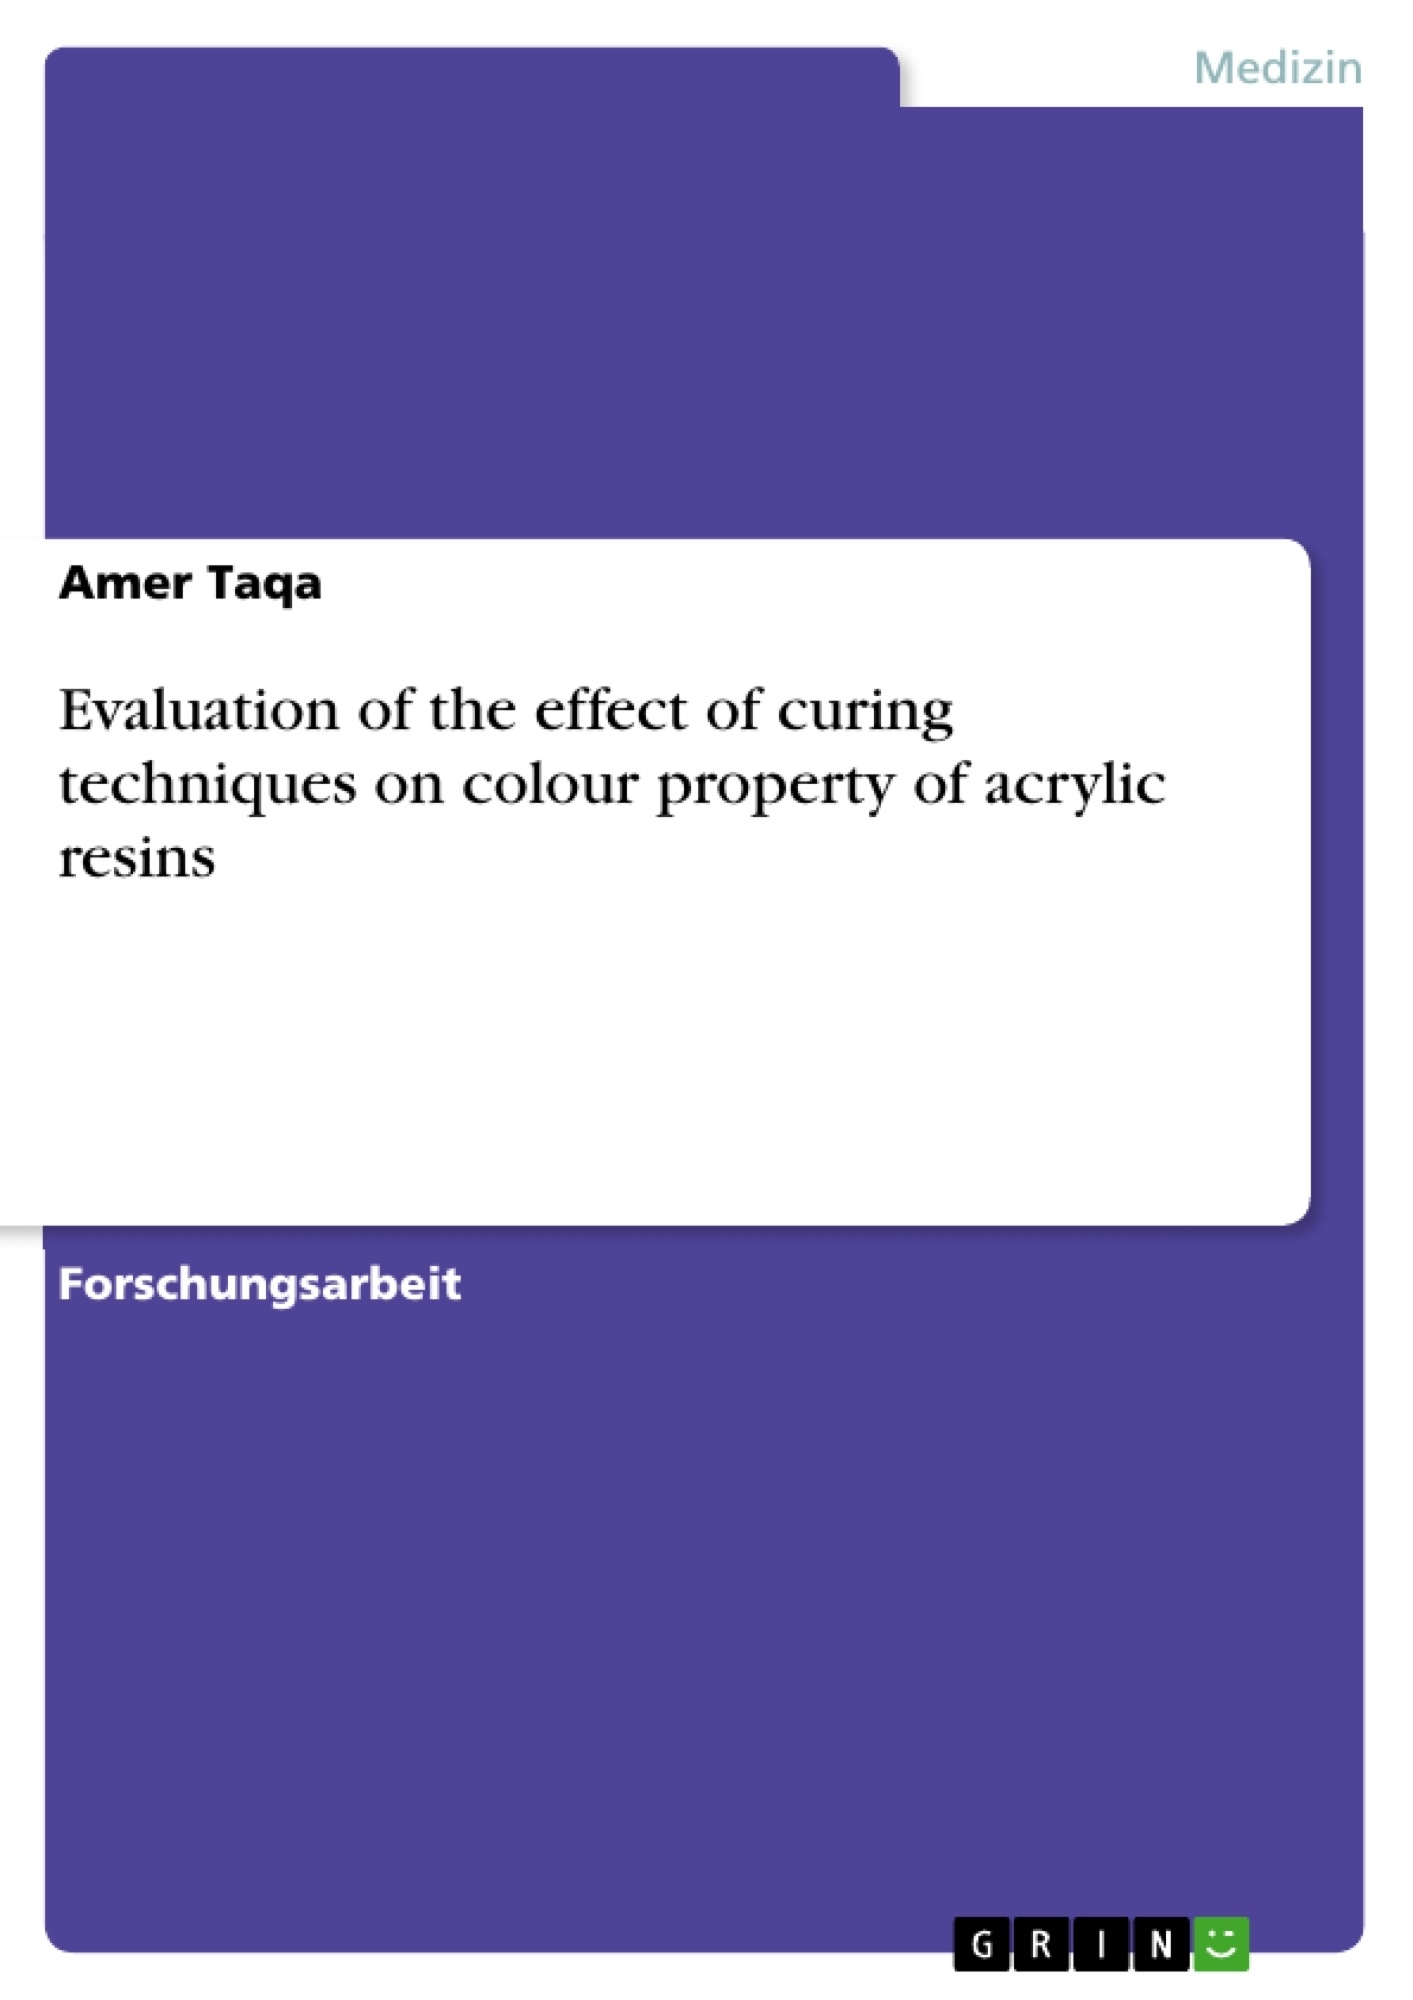 Titel: Evaluation of the effect of curing techniques on colour property of acrylic resins